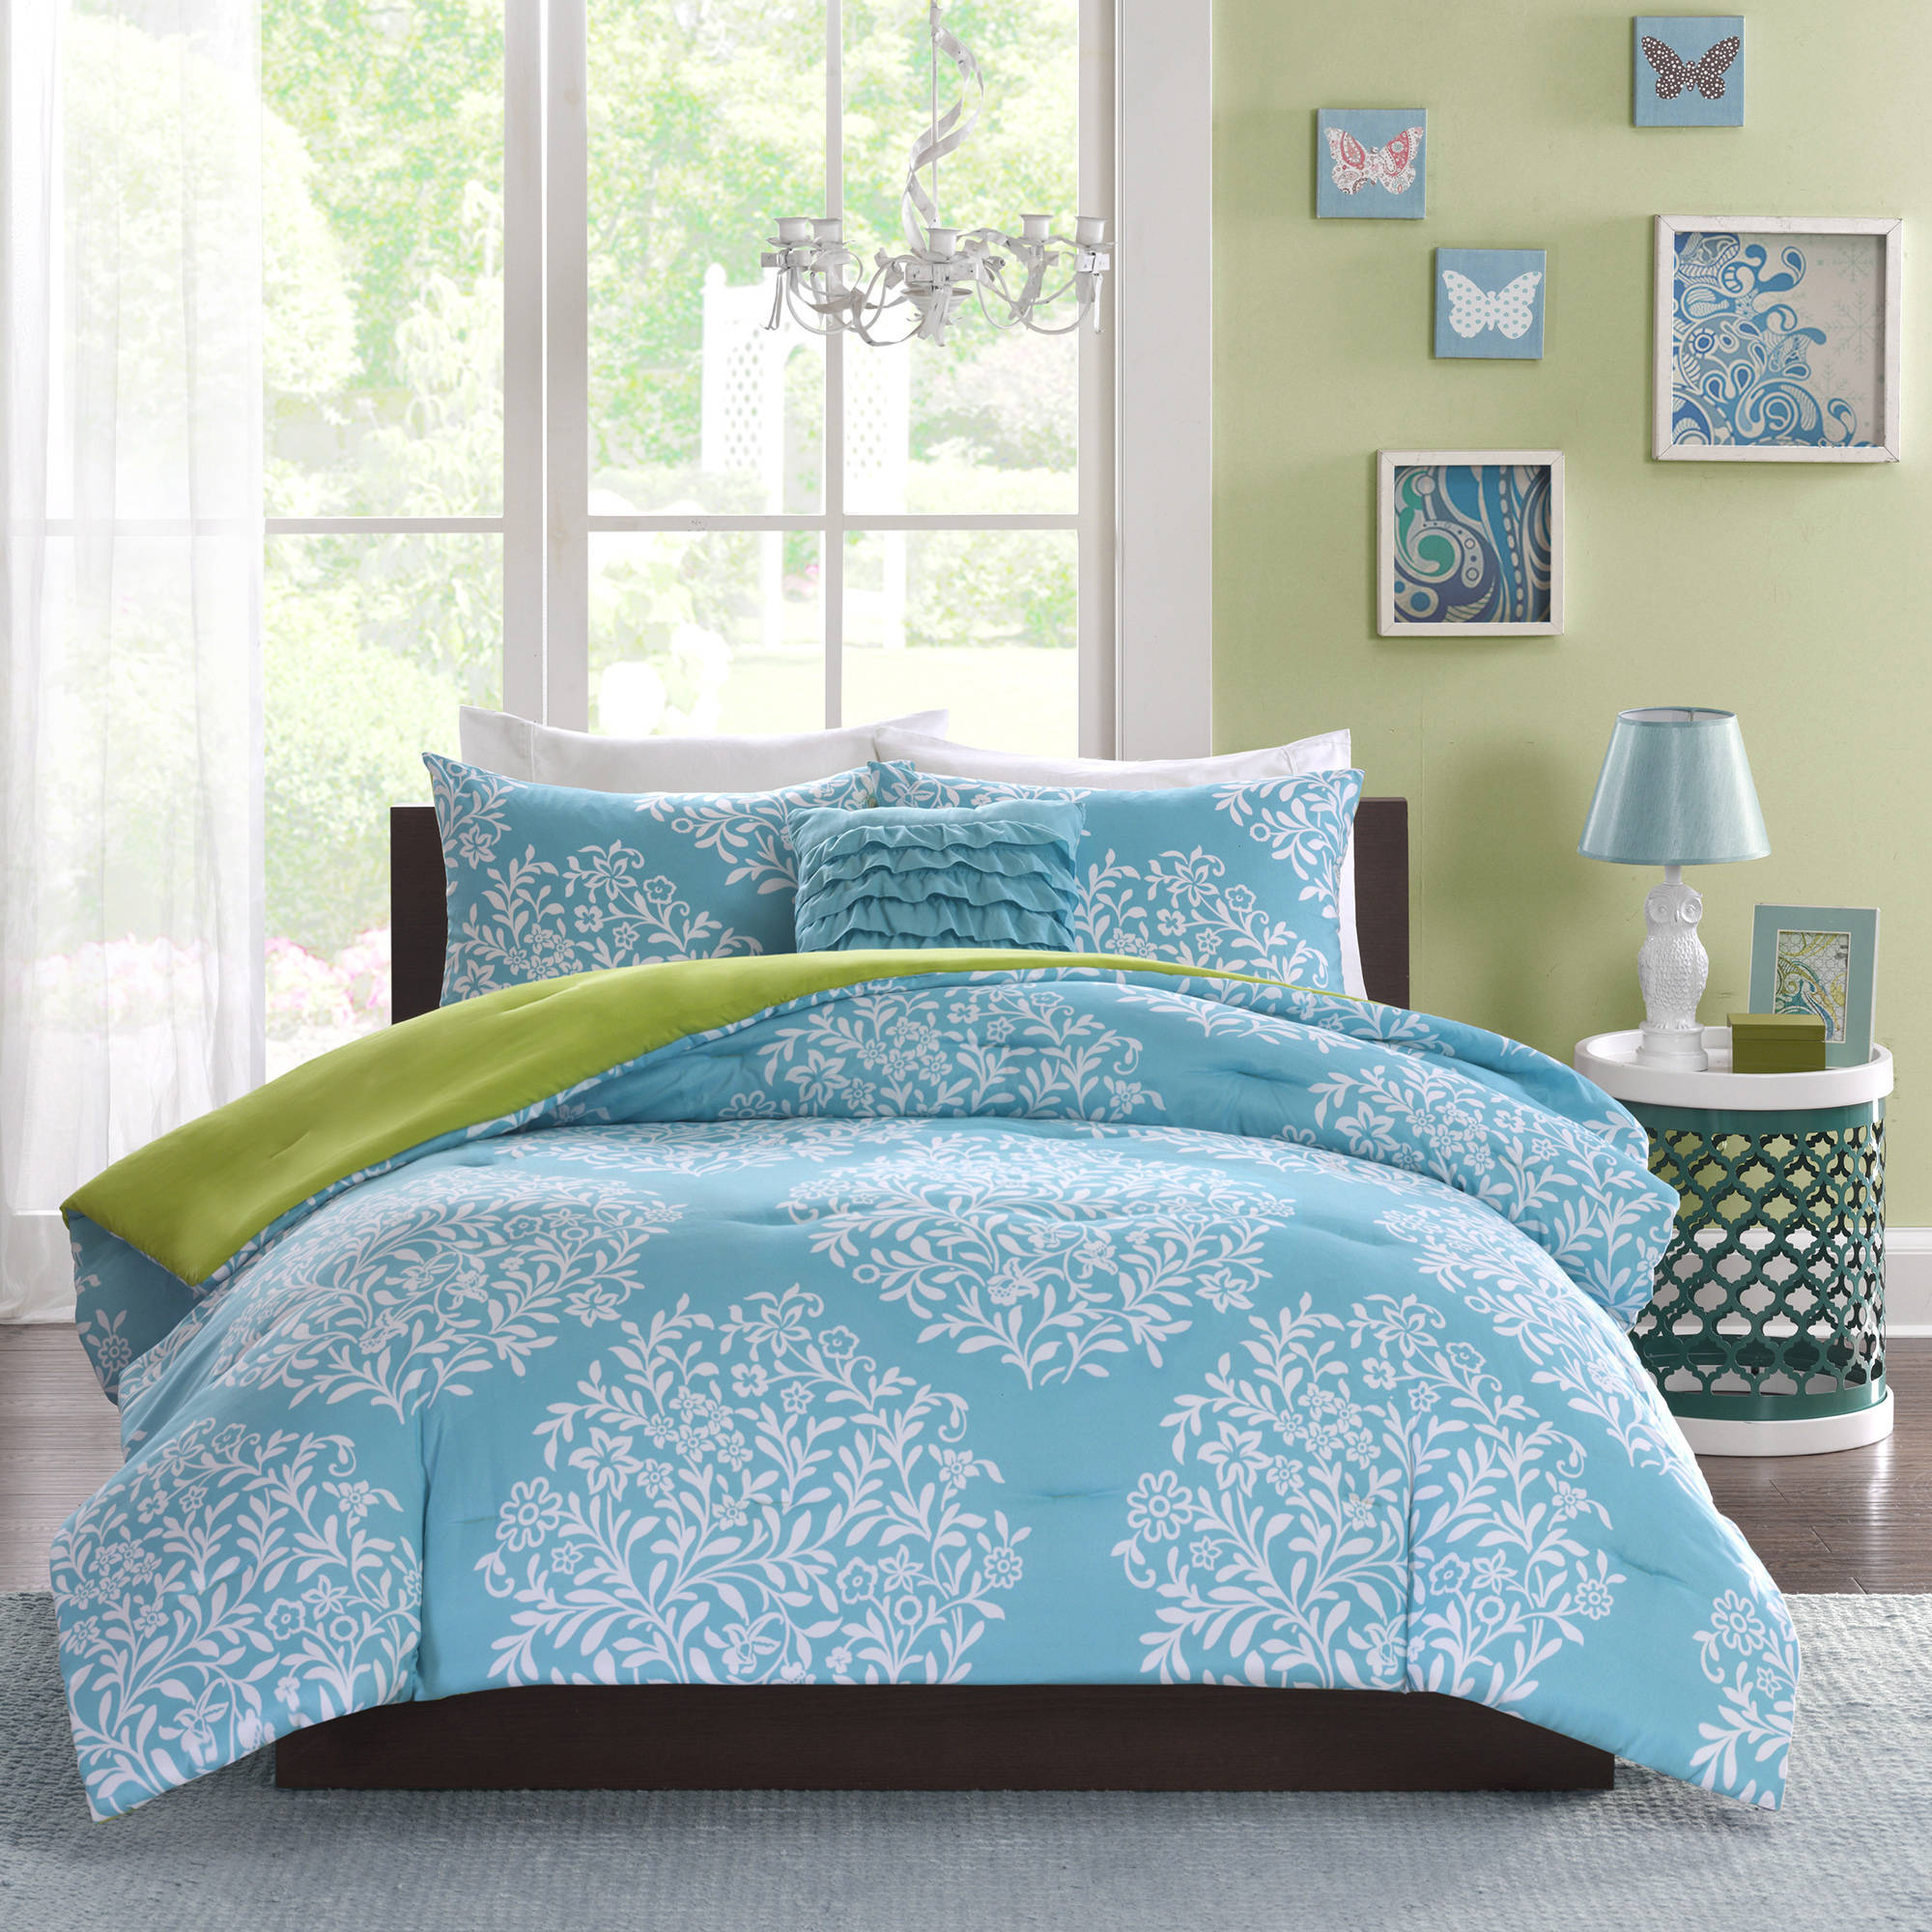 Home Essence Apartment Annette Bedding C